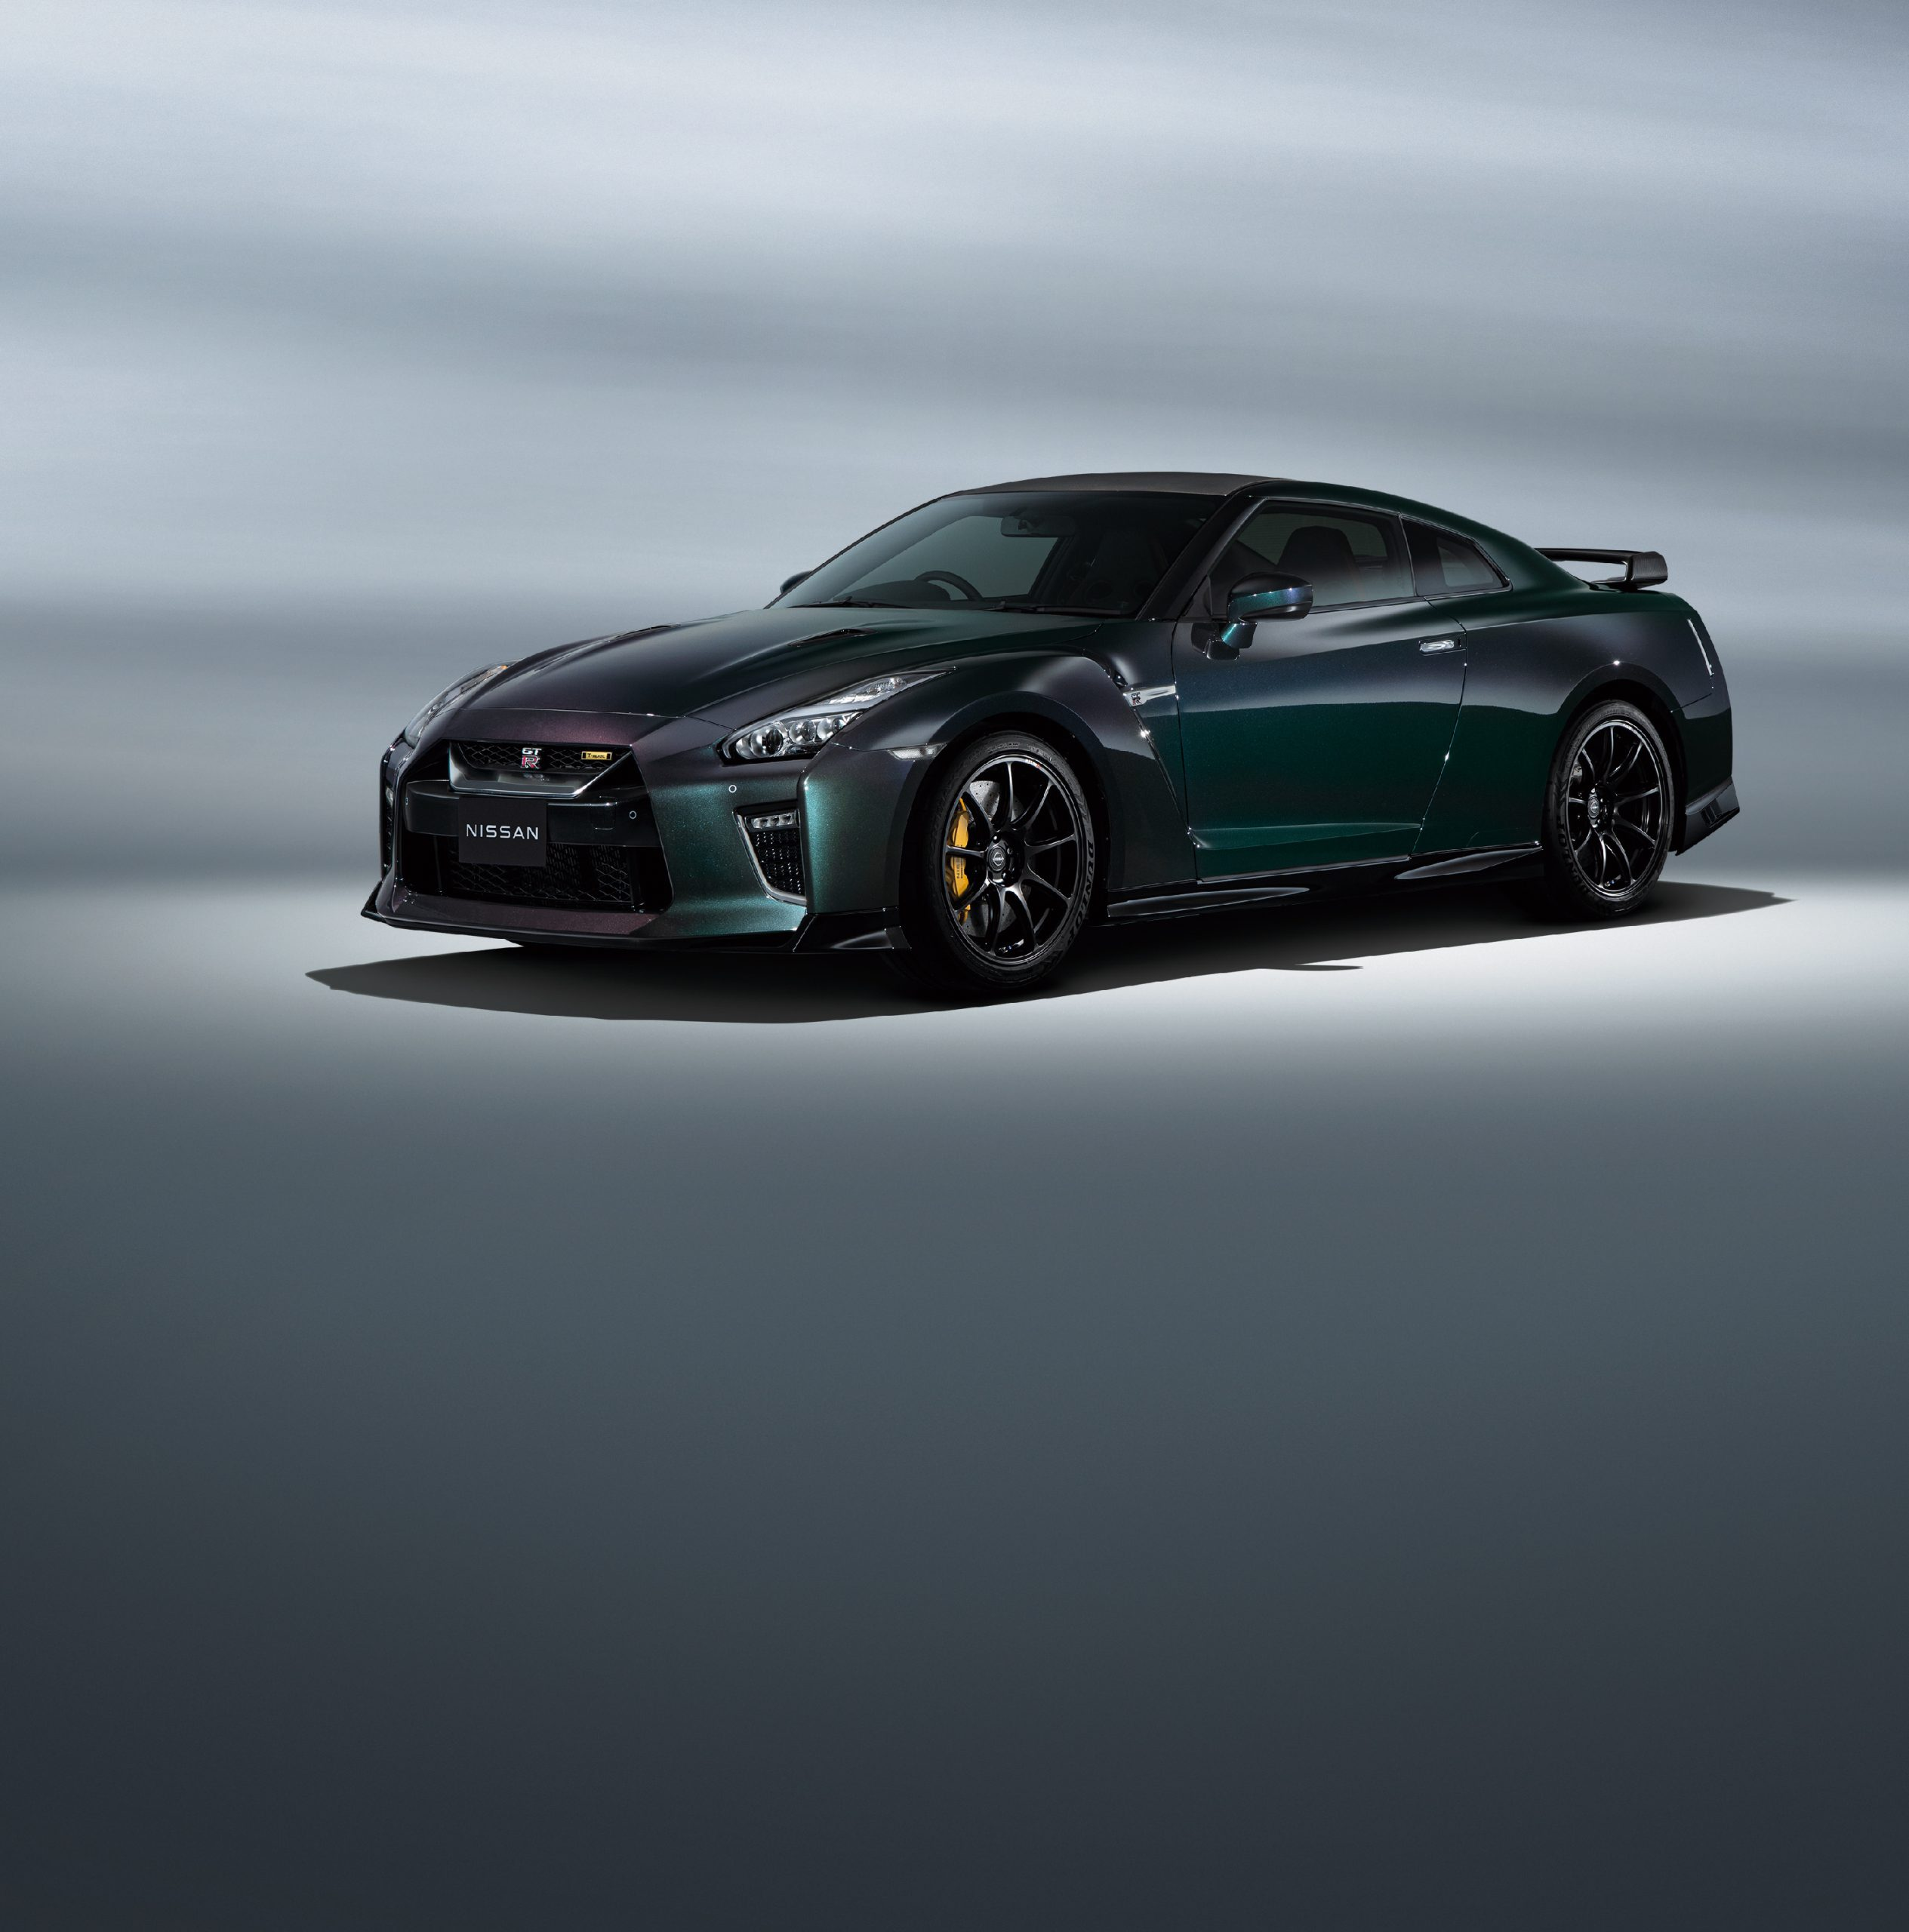 GT-R Track edition engineered by NISMO T-spec (Japan market)